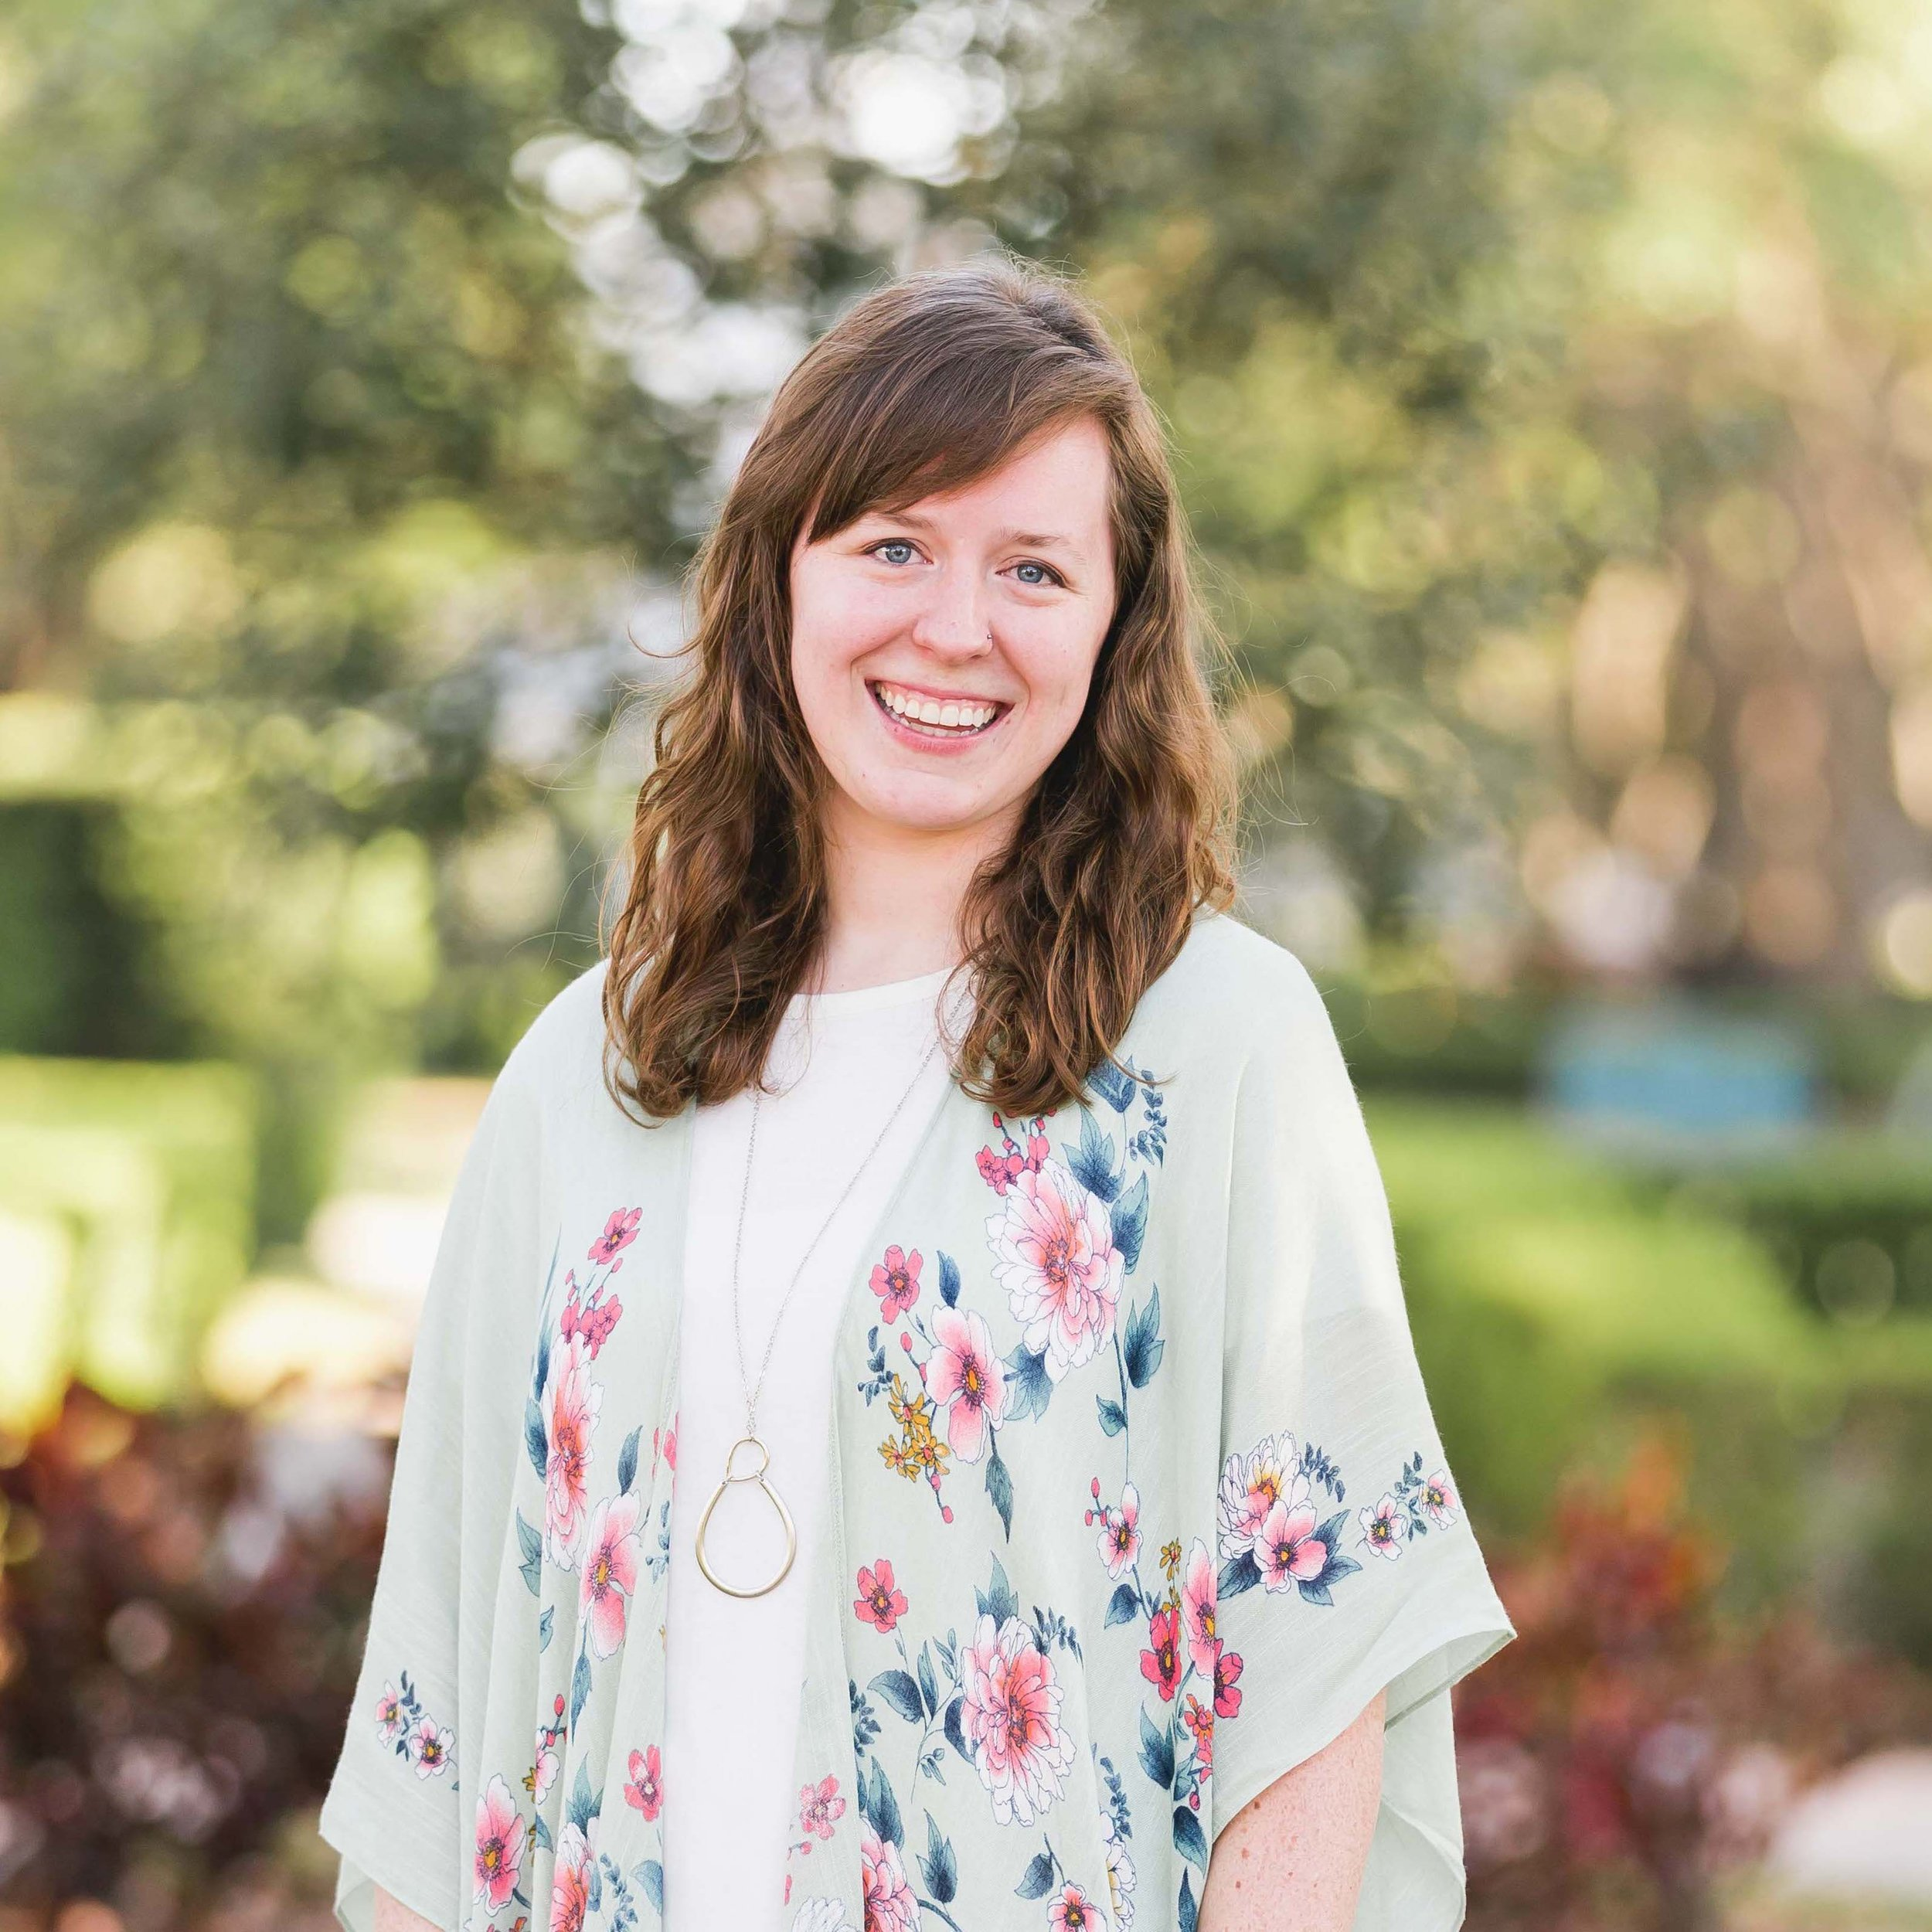 MEAGAN COOLEY - Marketing and Conference CoordinatorMeagan is a small-town transplant from Kentucky living in the Big Apple with her husband, Ben, Moose the Goldendoodle, and Nova the cat. She fell in love with flowers while working in a very numbers-oriented job; after craving creativity and beauty, Megan decided to pursue a life with flowers. In addition to building bouquets, Meagan loves watching a good Netflix show, exploring the city with friends, and playing the piano. At Team Flower, she helps put on the big yearly conference and invites people to join in. She loves spreading the word about what Team Flower's up to so more people can get plugged in and be encouraged!What do you love about working in the floral industry?I love being a part of a community that is so passionate about nature, flowers, and the people that they serve.What's your favorite thing about working with flowers?Their beauty of course, but perhaps more so, their intricacies . . . you can probably find me somewhere, stopped in my tracks, holding or staring at a flower, saying